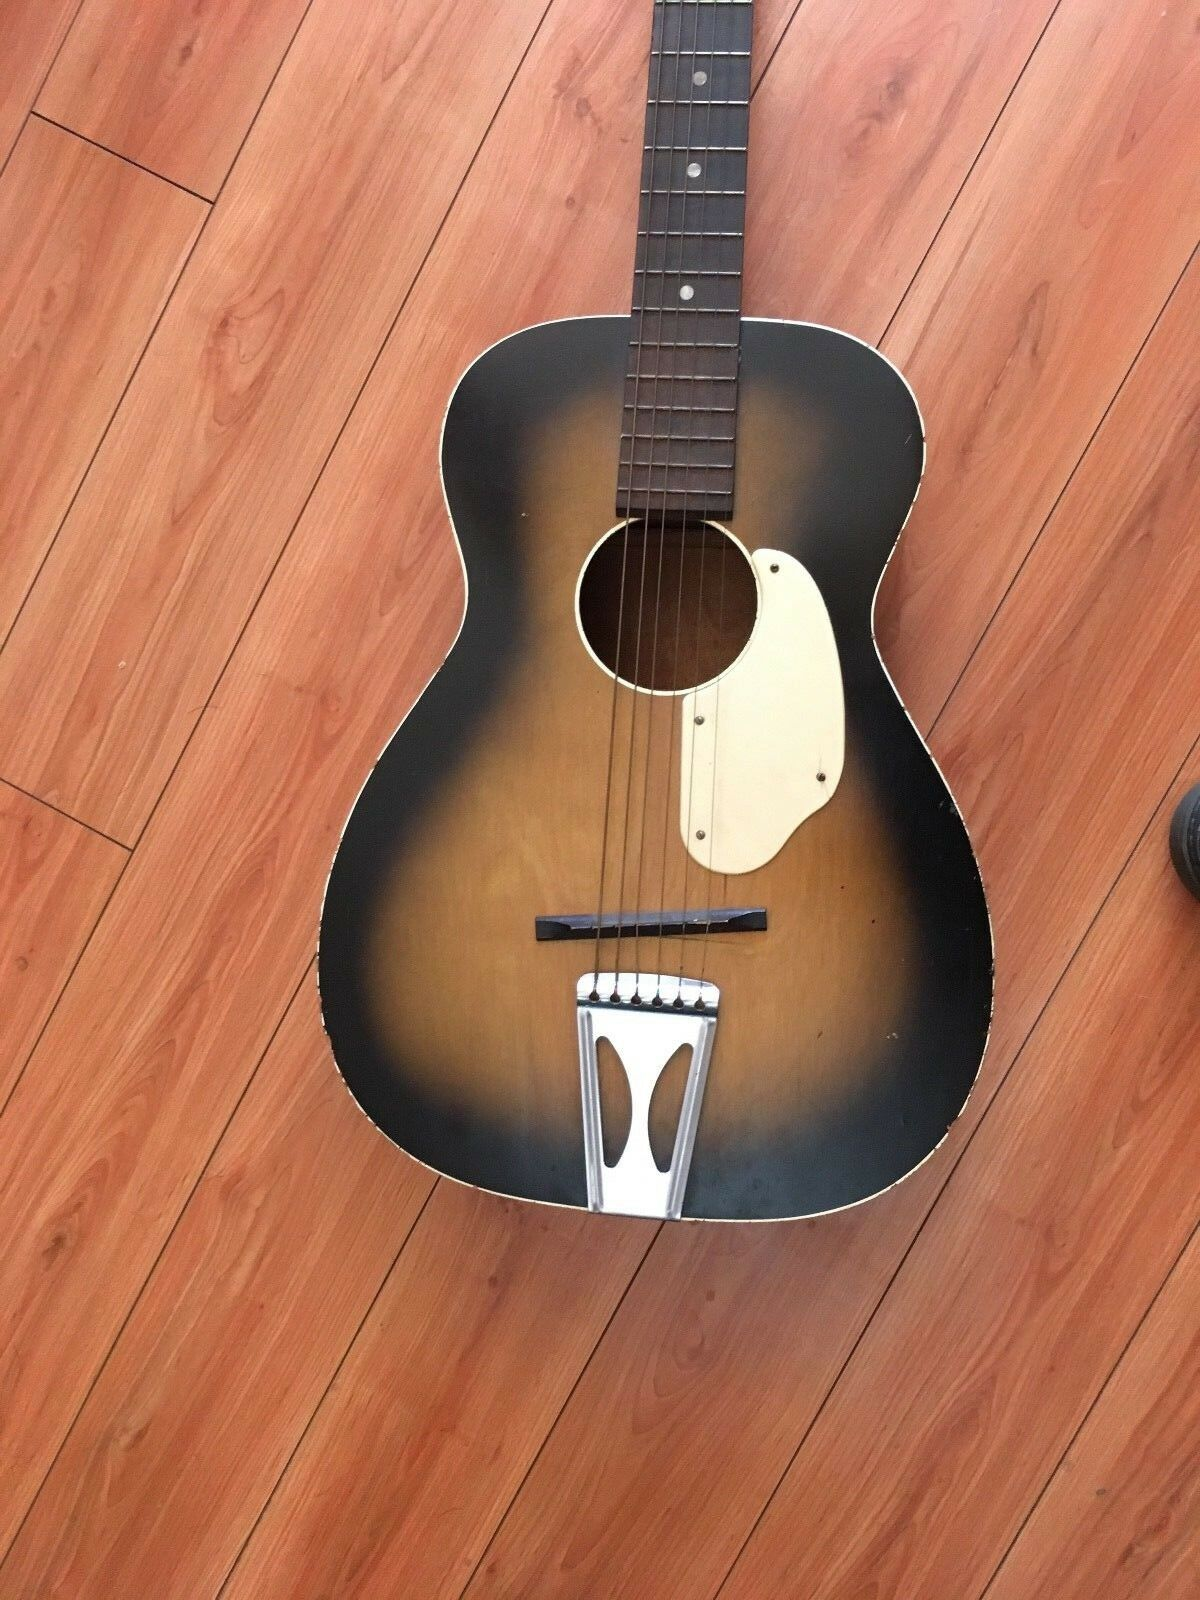 Vintage 1950s  60s Fender by Harmony Parlor Größe Acoustic Guitar- Made in USA